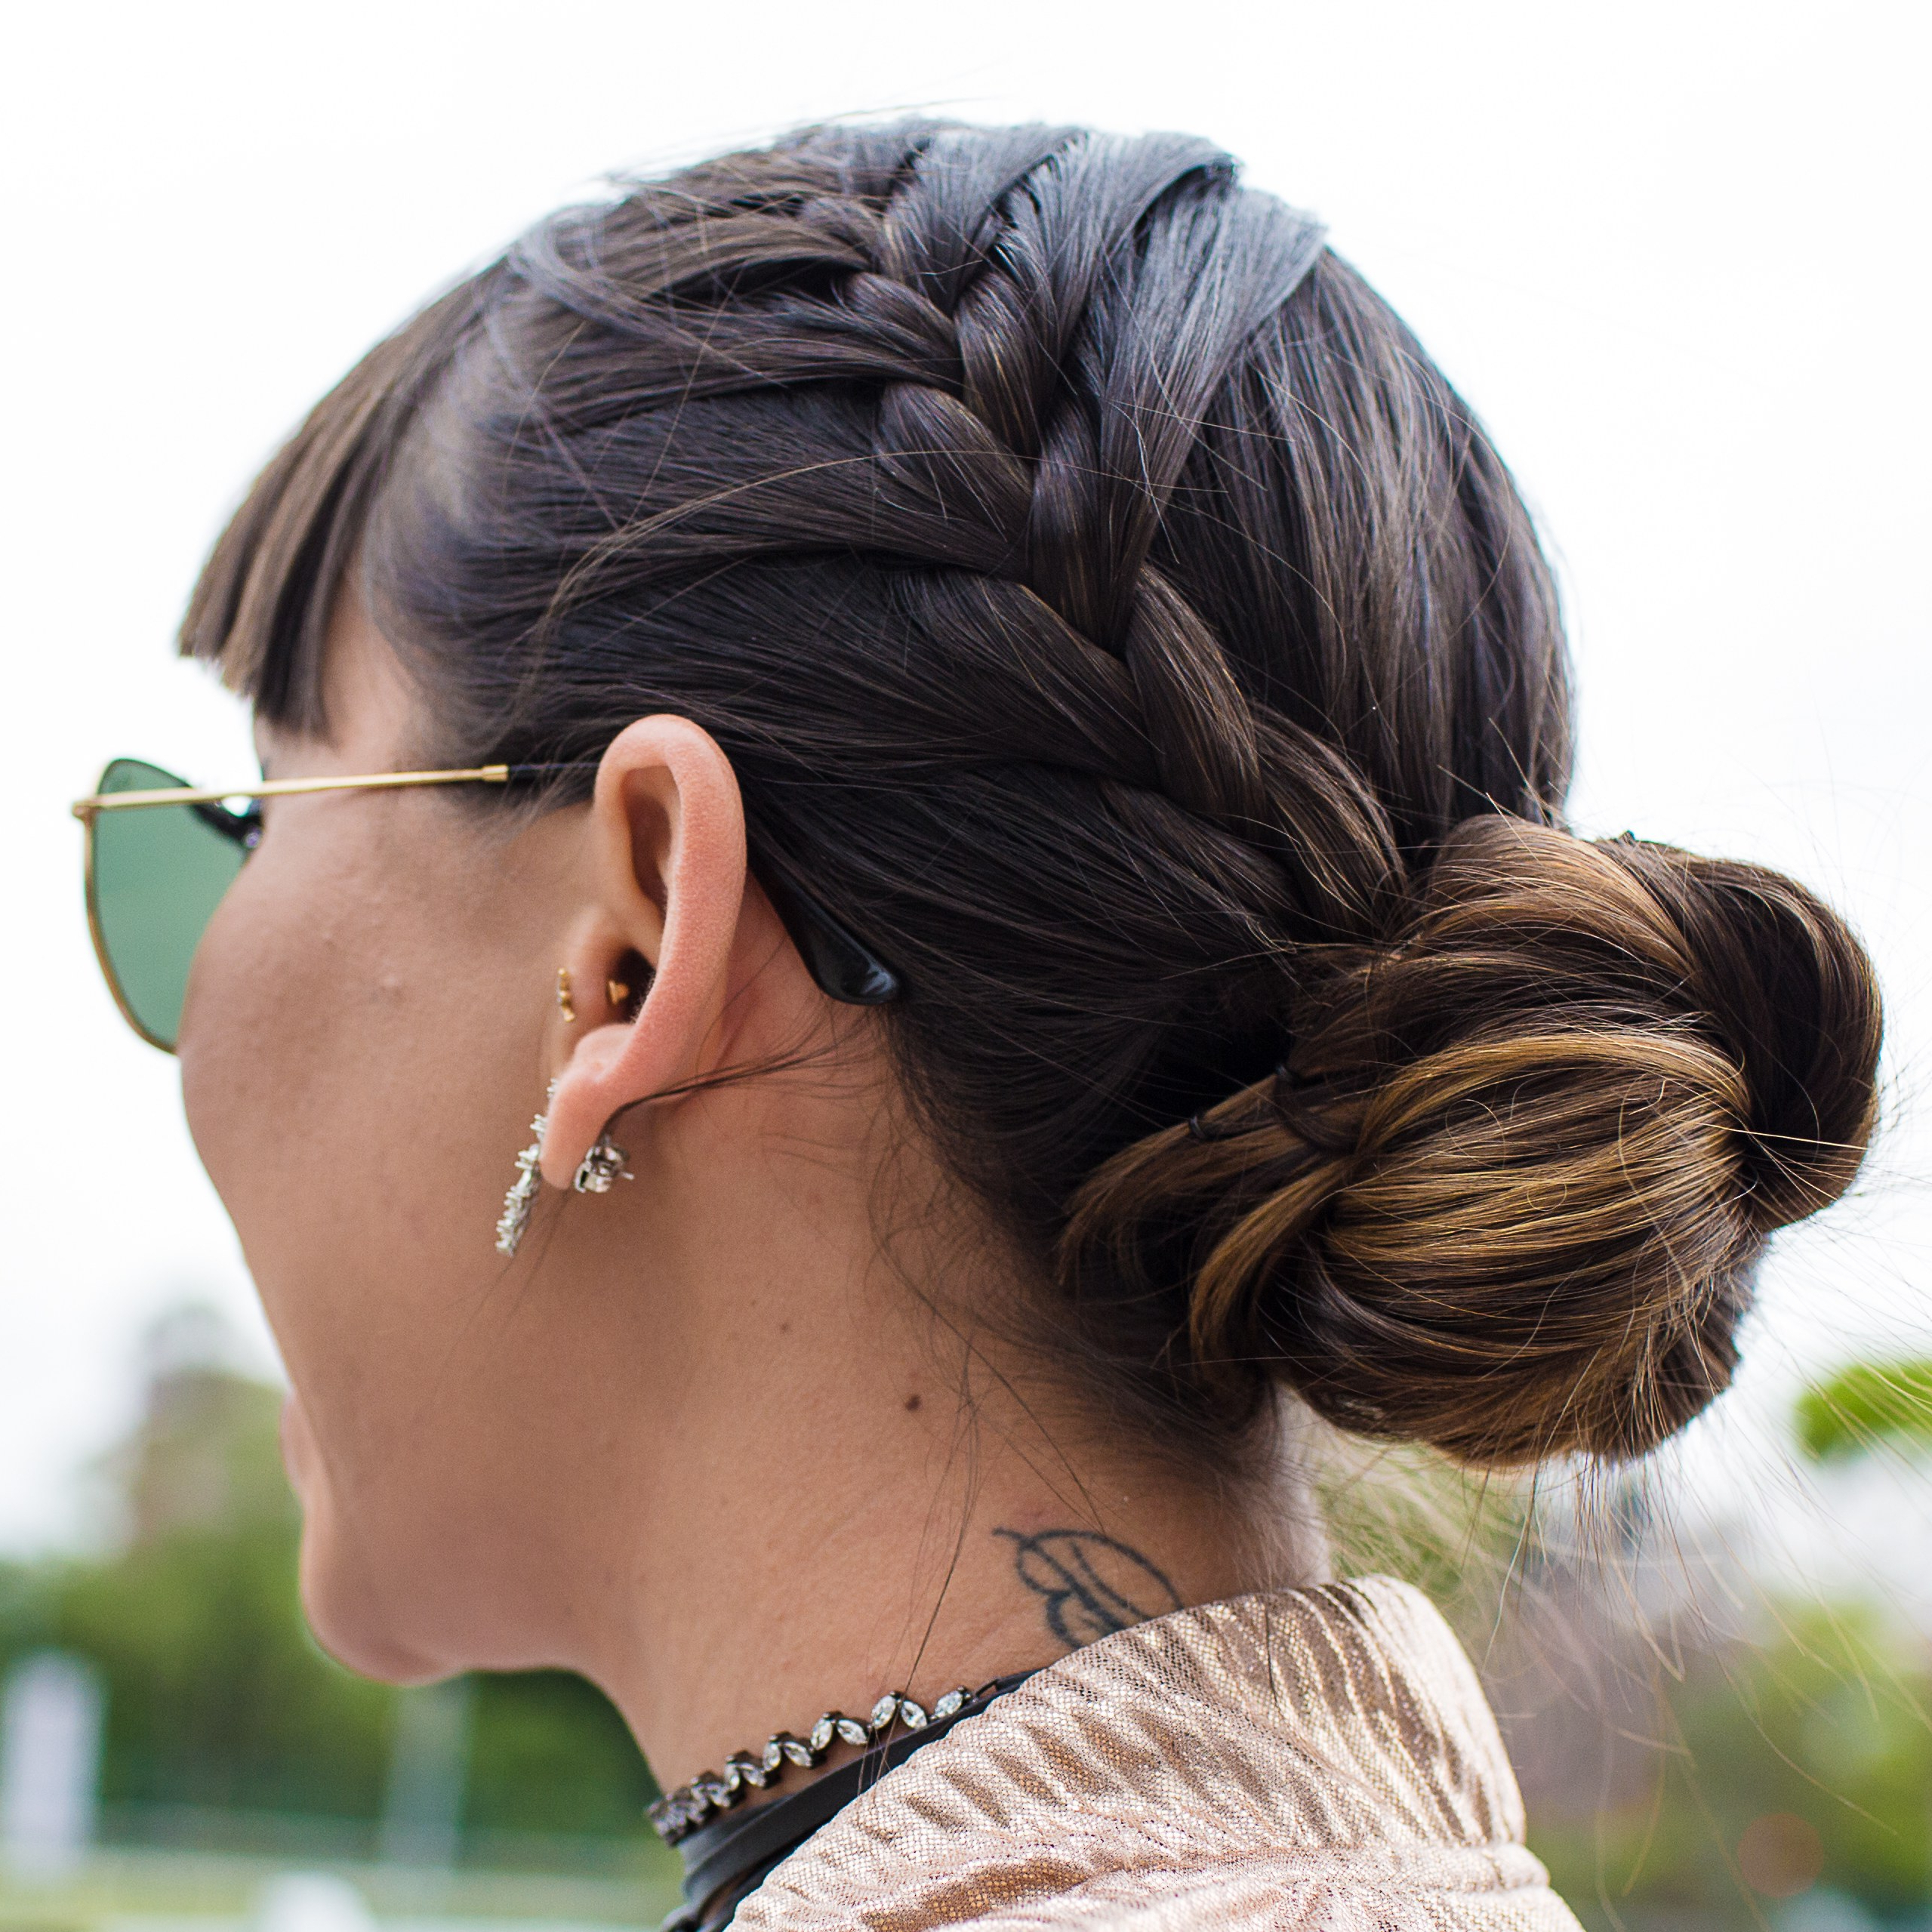 Best And Newest Full Scalp Patterned Side Braided Hairstyles Regarding How To Braid Hair – 10 Tutorials You Can Do Yourself (View 6 of 20)